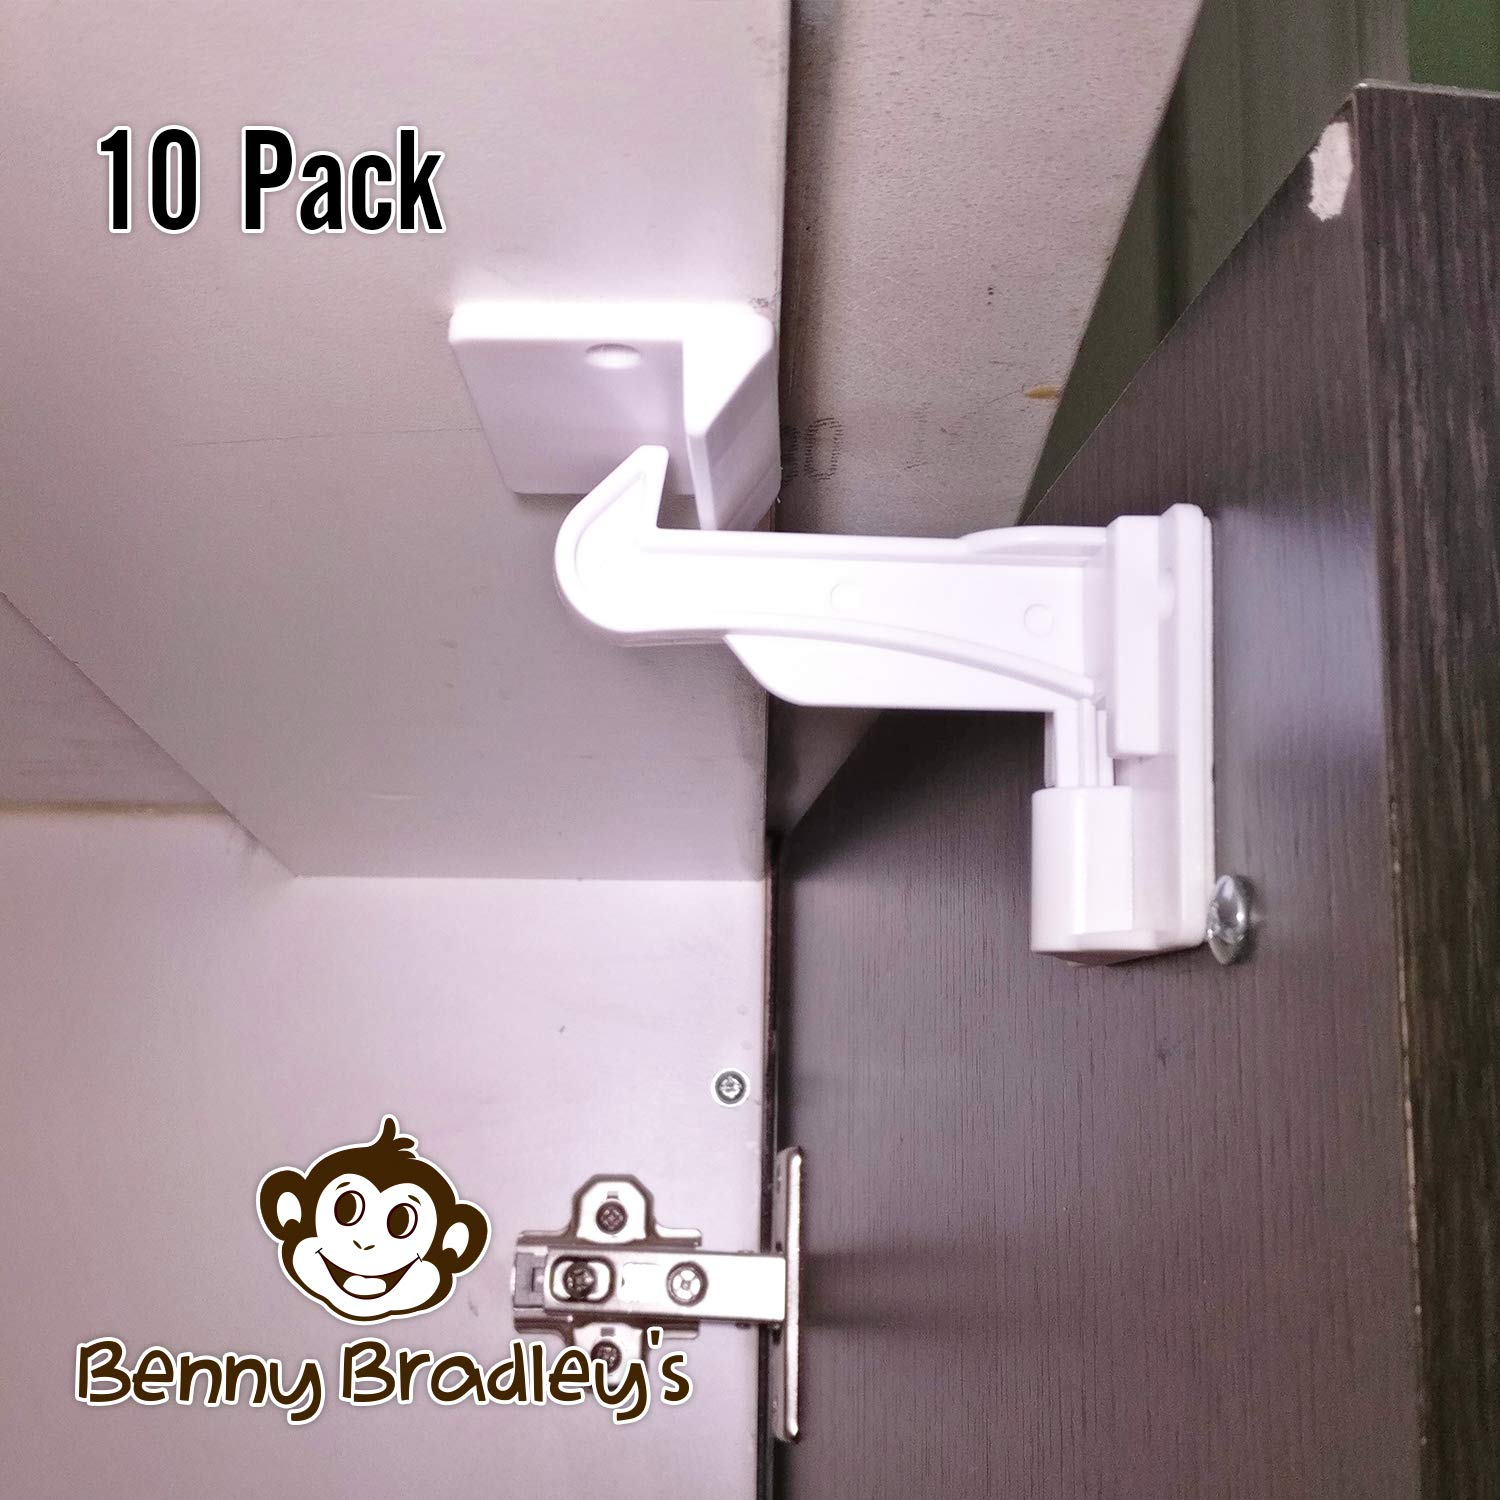 UPGRADED Invisible Baby Proofing Cabinet Latch Locks (10 Pack) - No Drilling or Tools Required for Installation, Universal for All Cabinets and Drawers, Works with Countertop Overhangs, Highly Secure - (WHITE) Benny Bradley' s